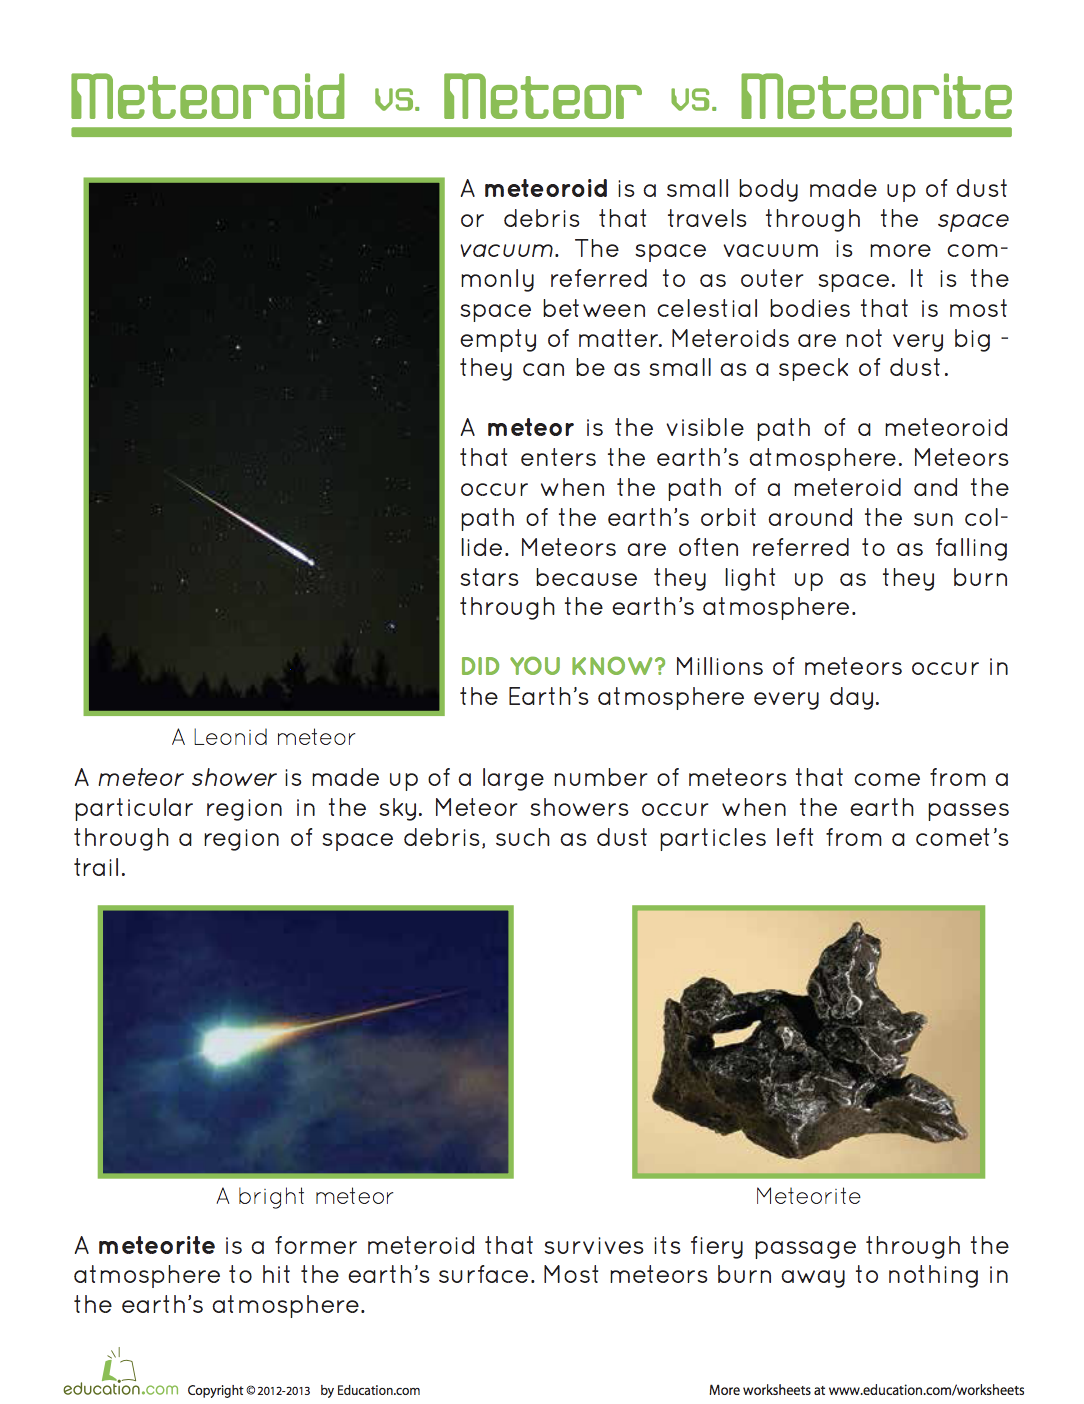 Meteor Meteorite Meteoroid With Images